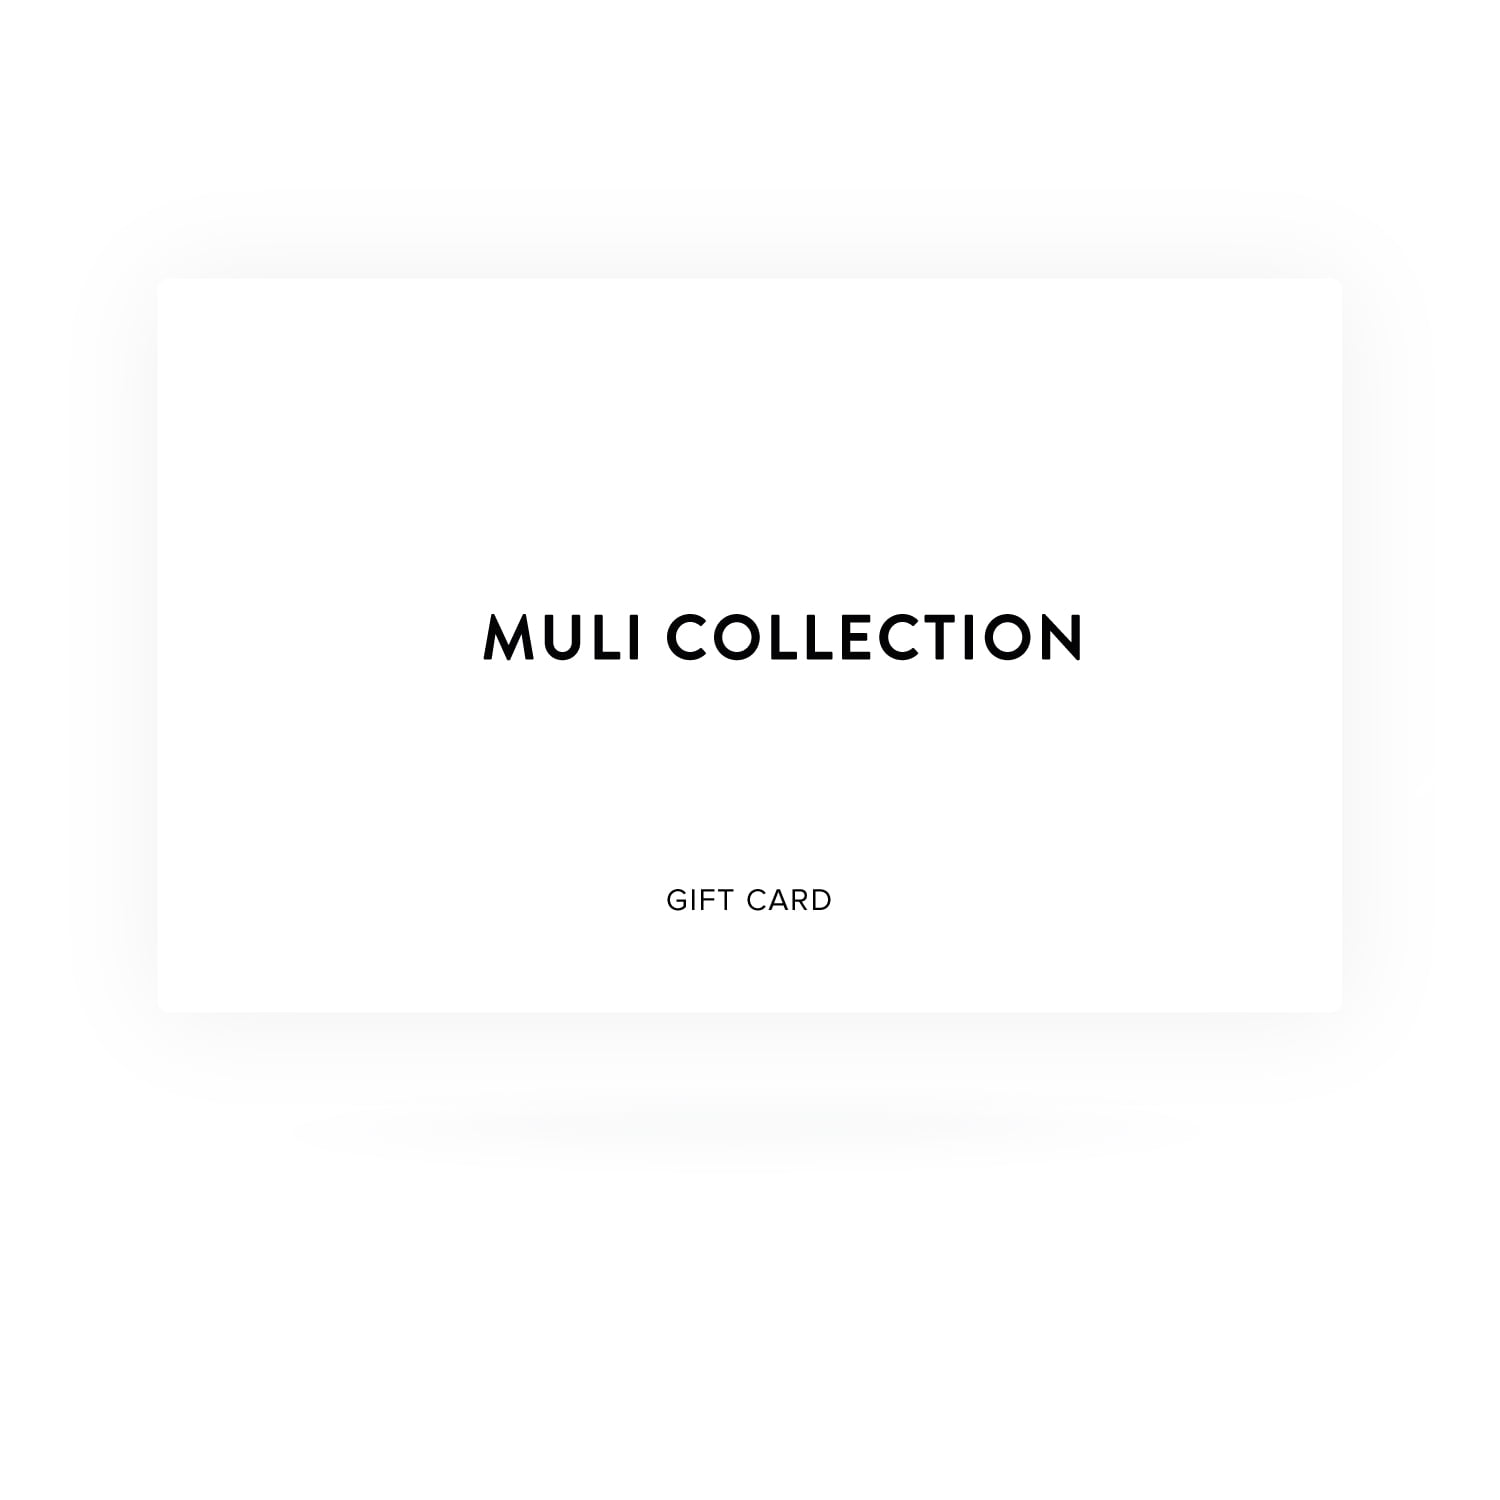 Muli Collection Gift Card